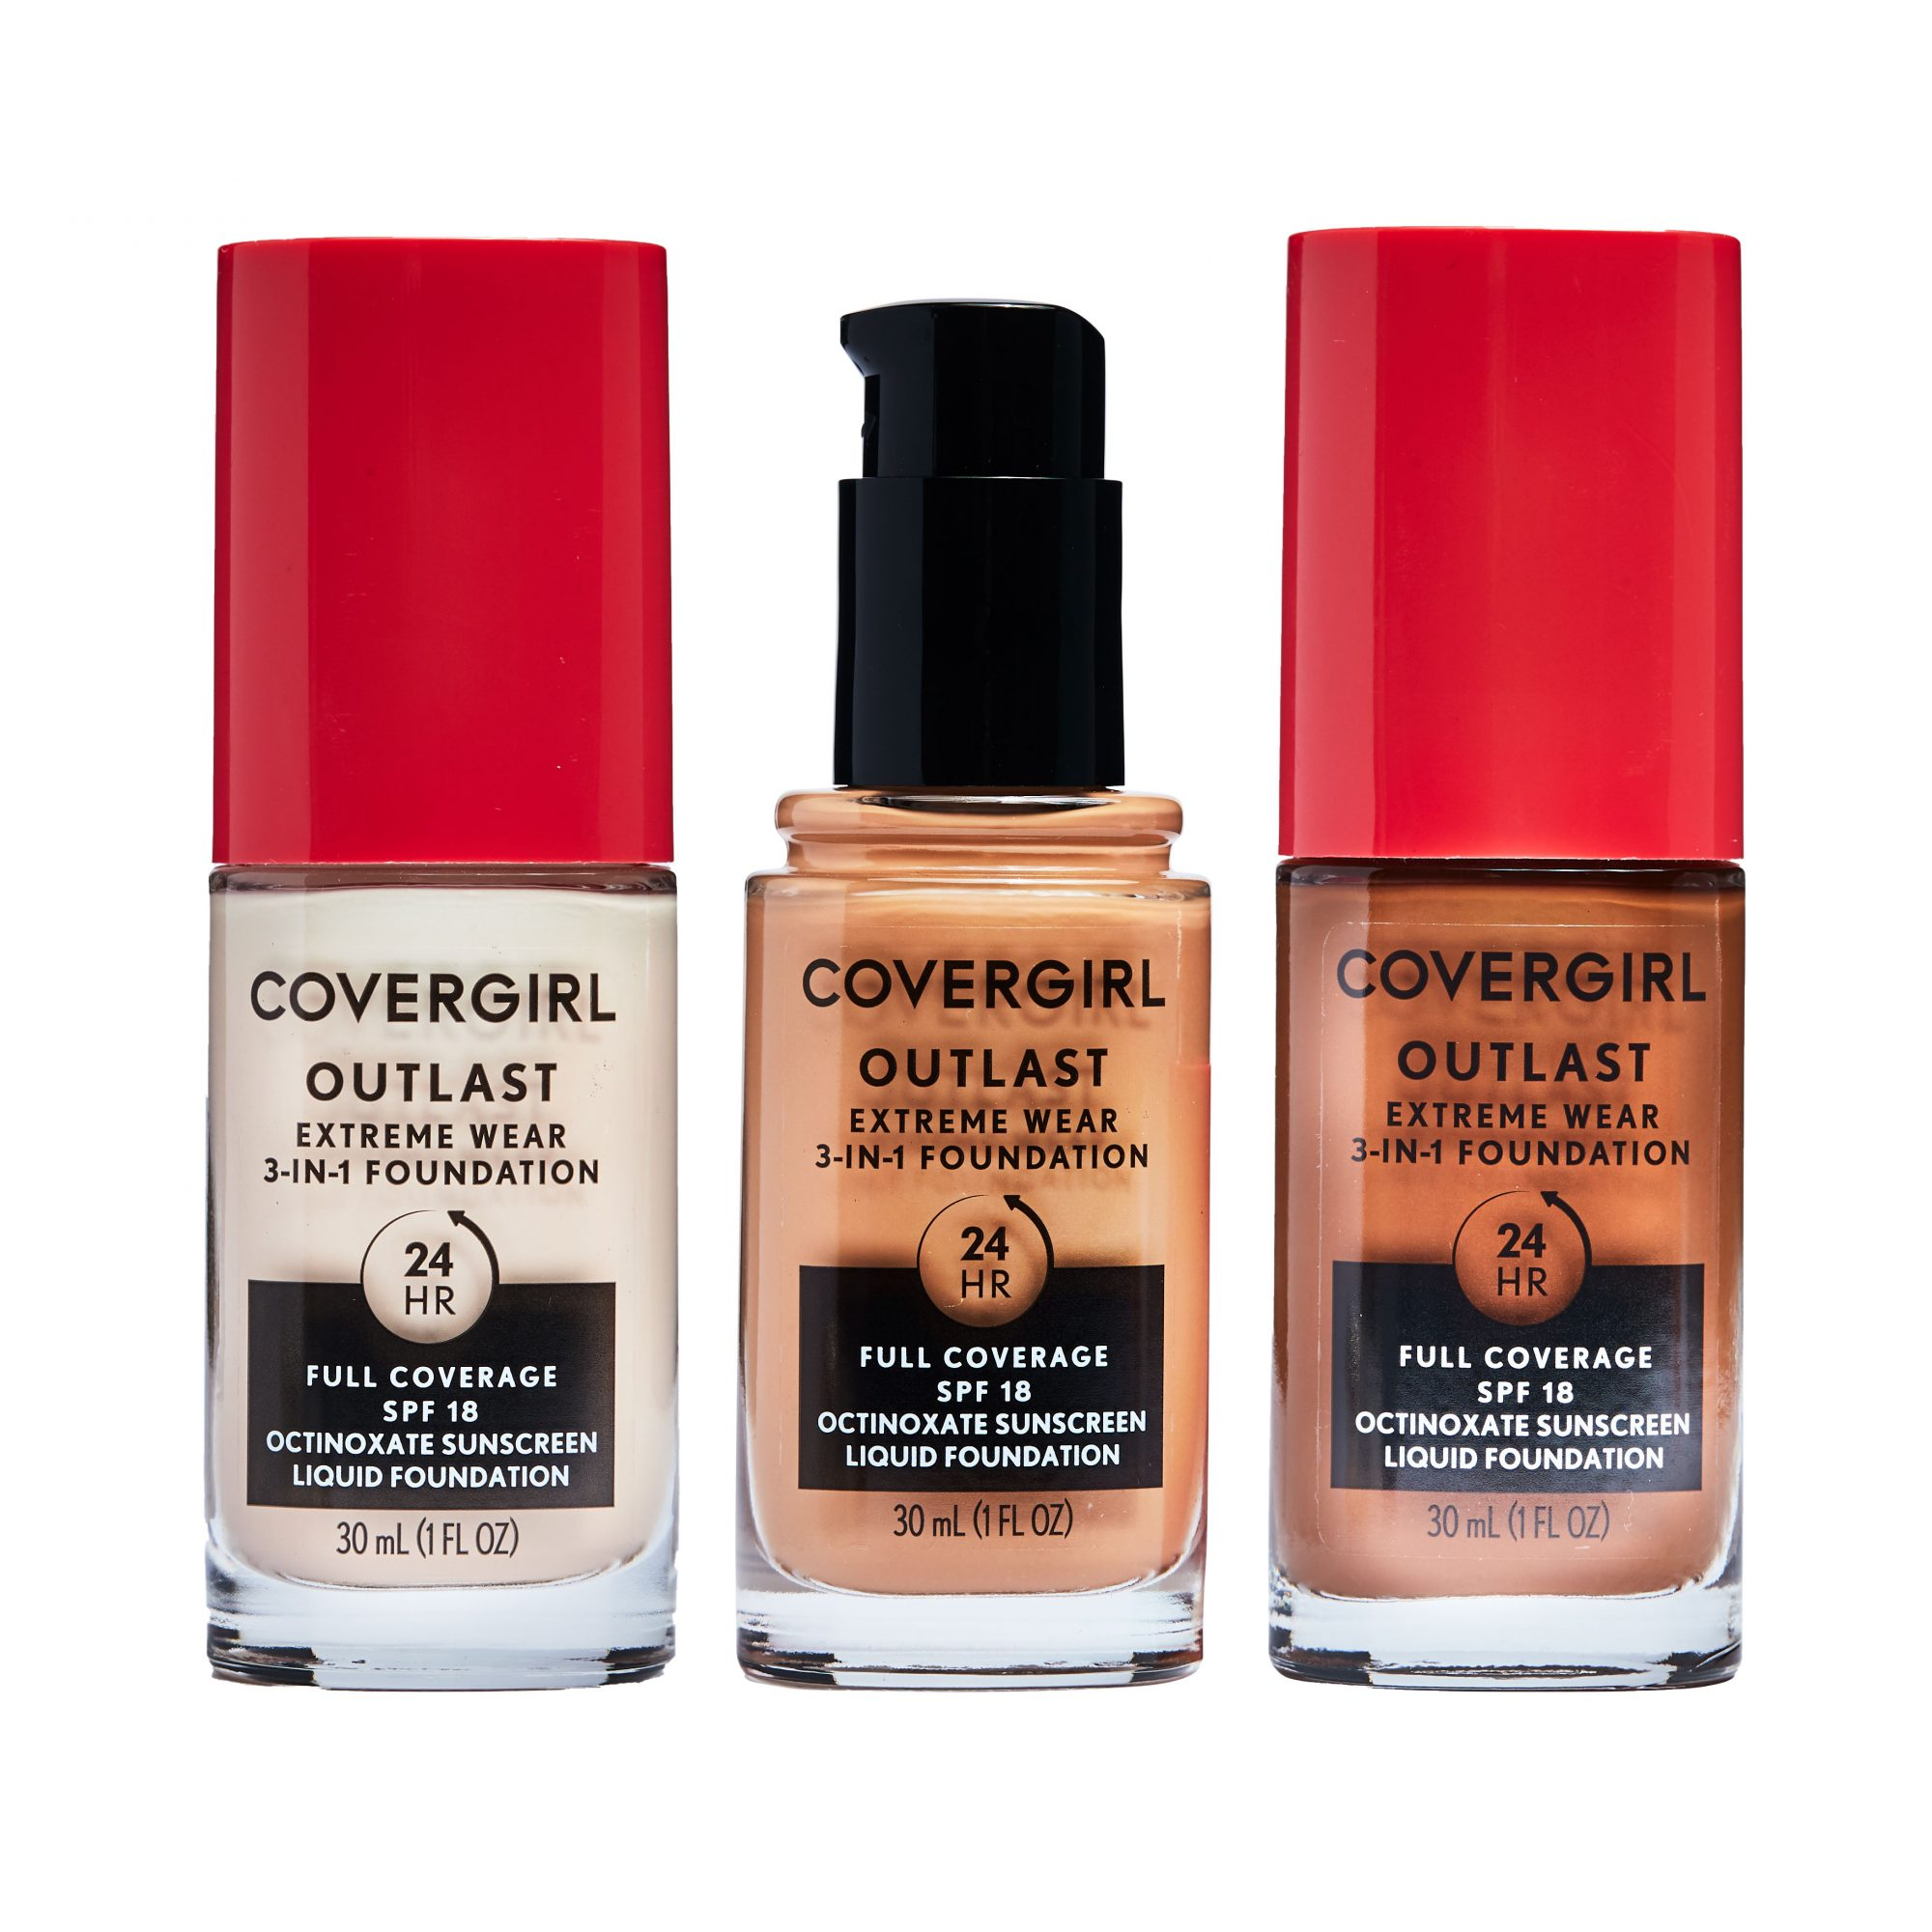 Covergirl Outlast Extreme Wear 3-in-1 Full Coverage Foundation